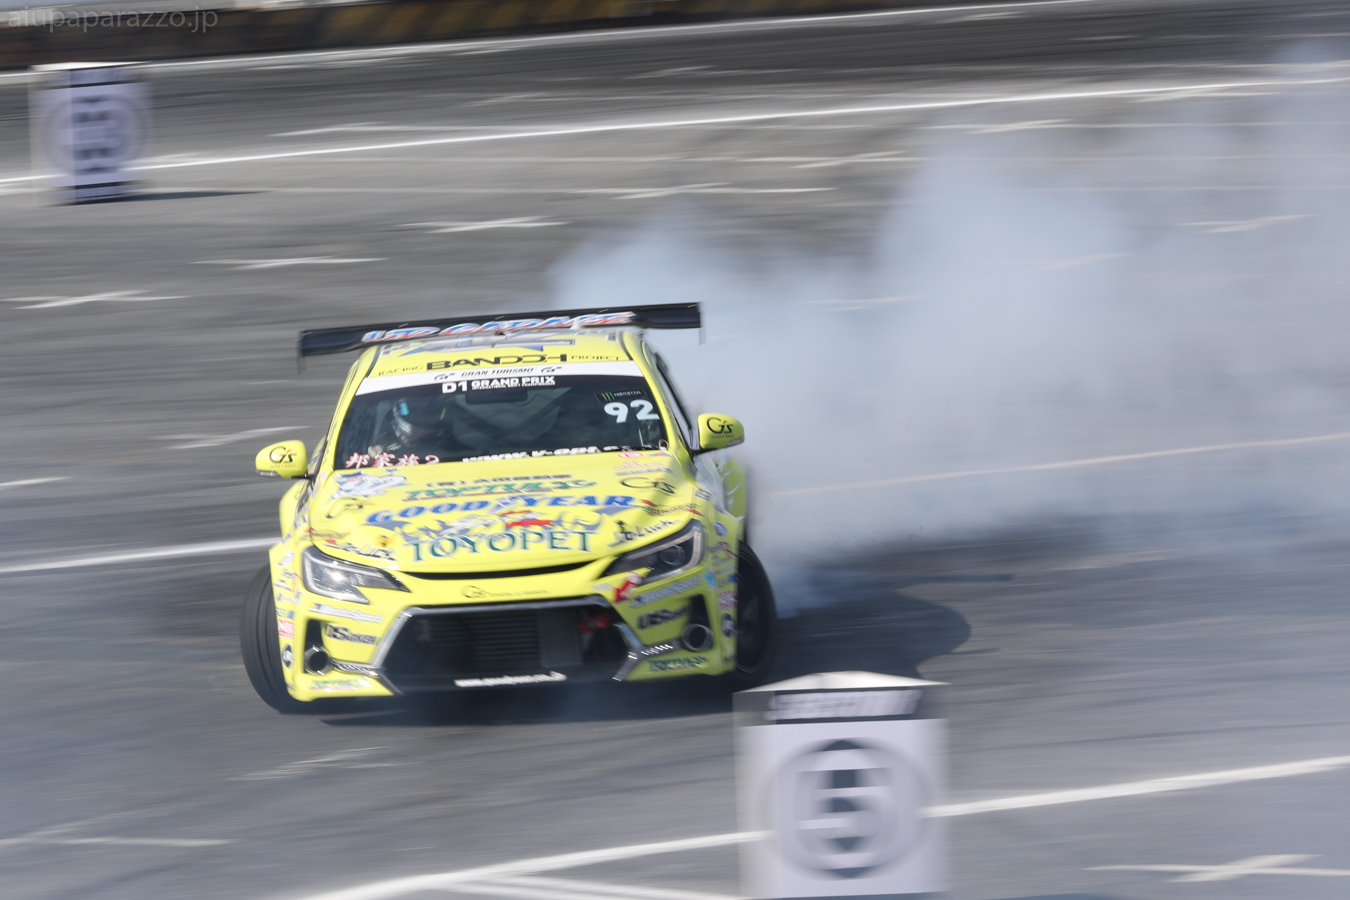 d1gp_tan2016lap3-40.jpg